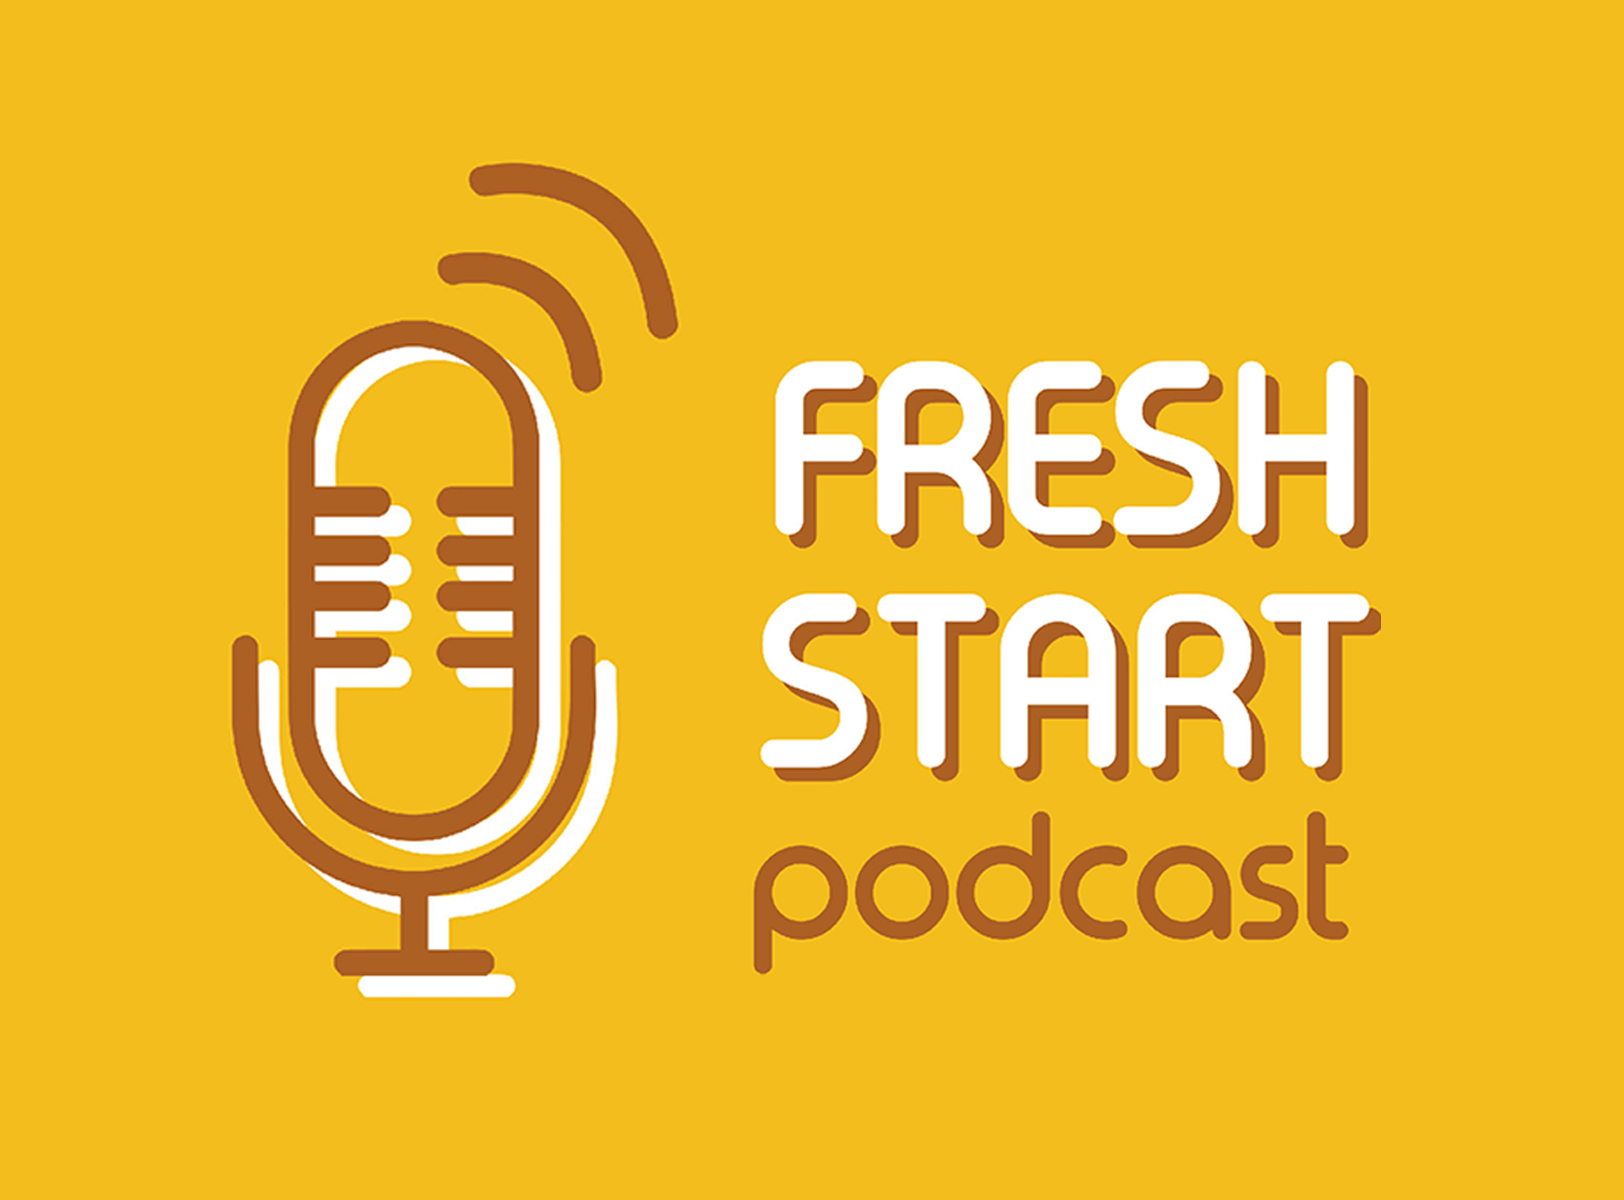 Fresh Start: Podcast News (01/07/2019 Mon.)